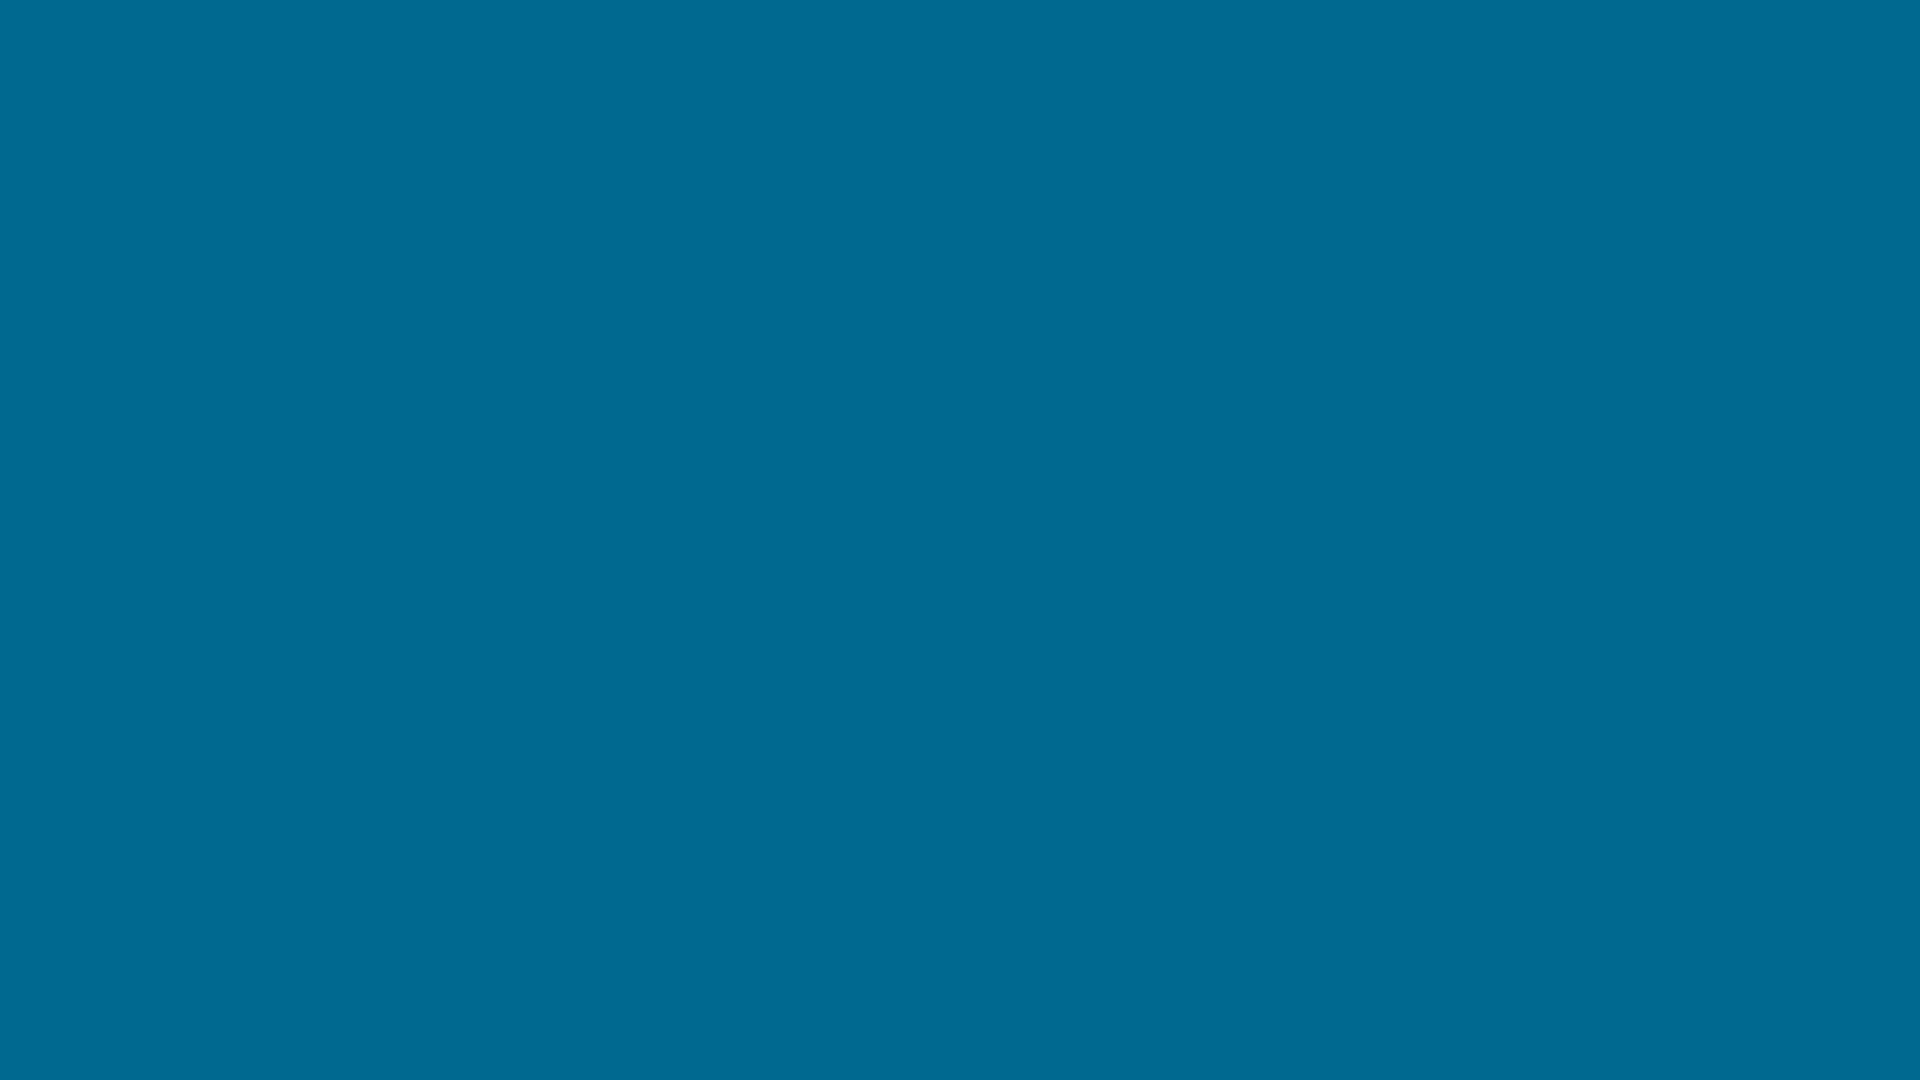 plain_vmware_blue3